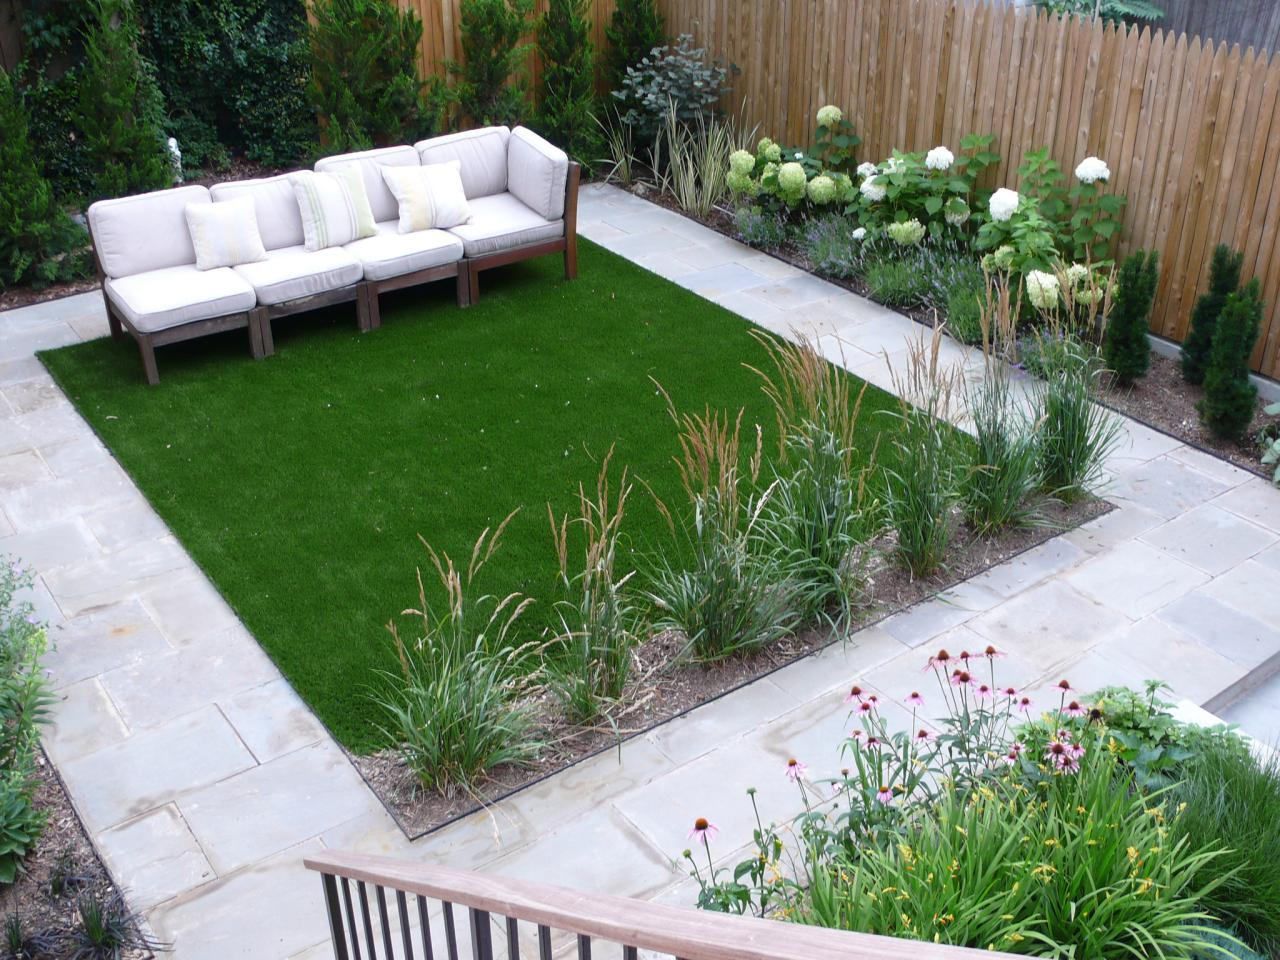 Low maintenance landscaping design ideas hgtv for Backyard low maintenance landscaping ideas